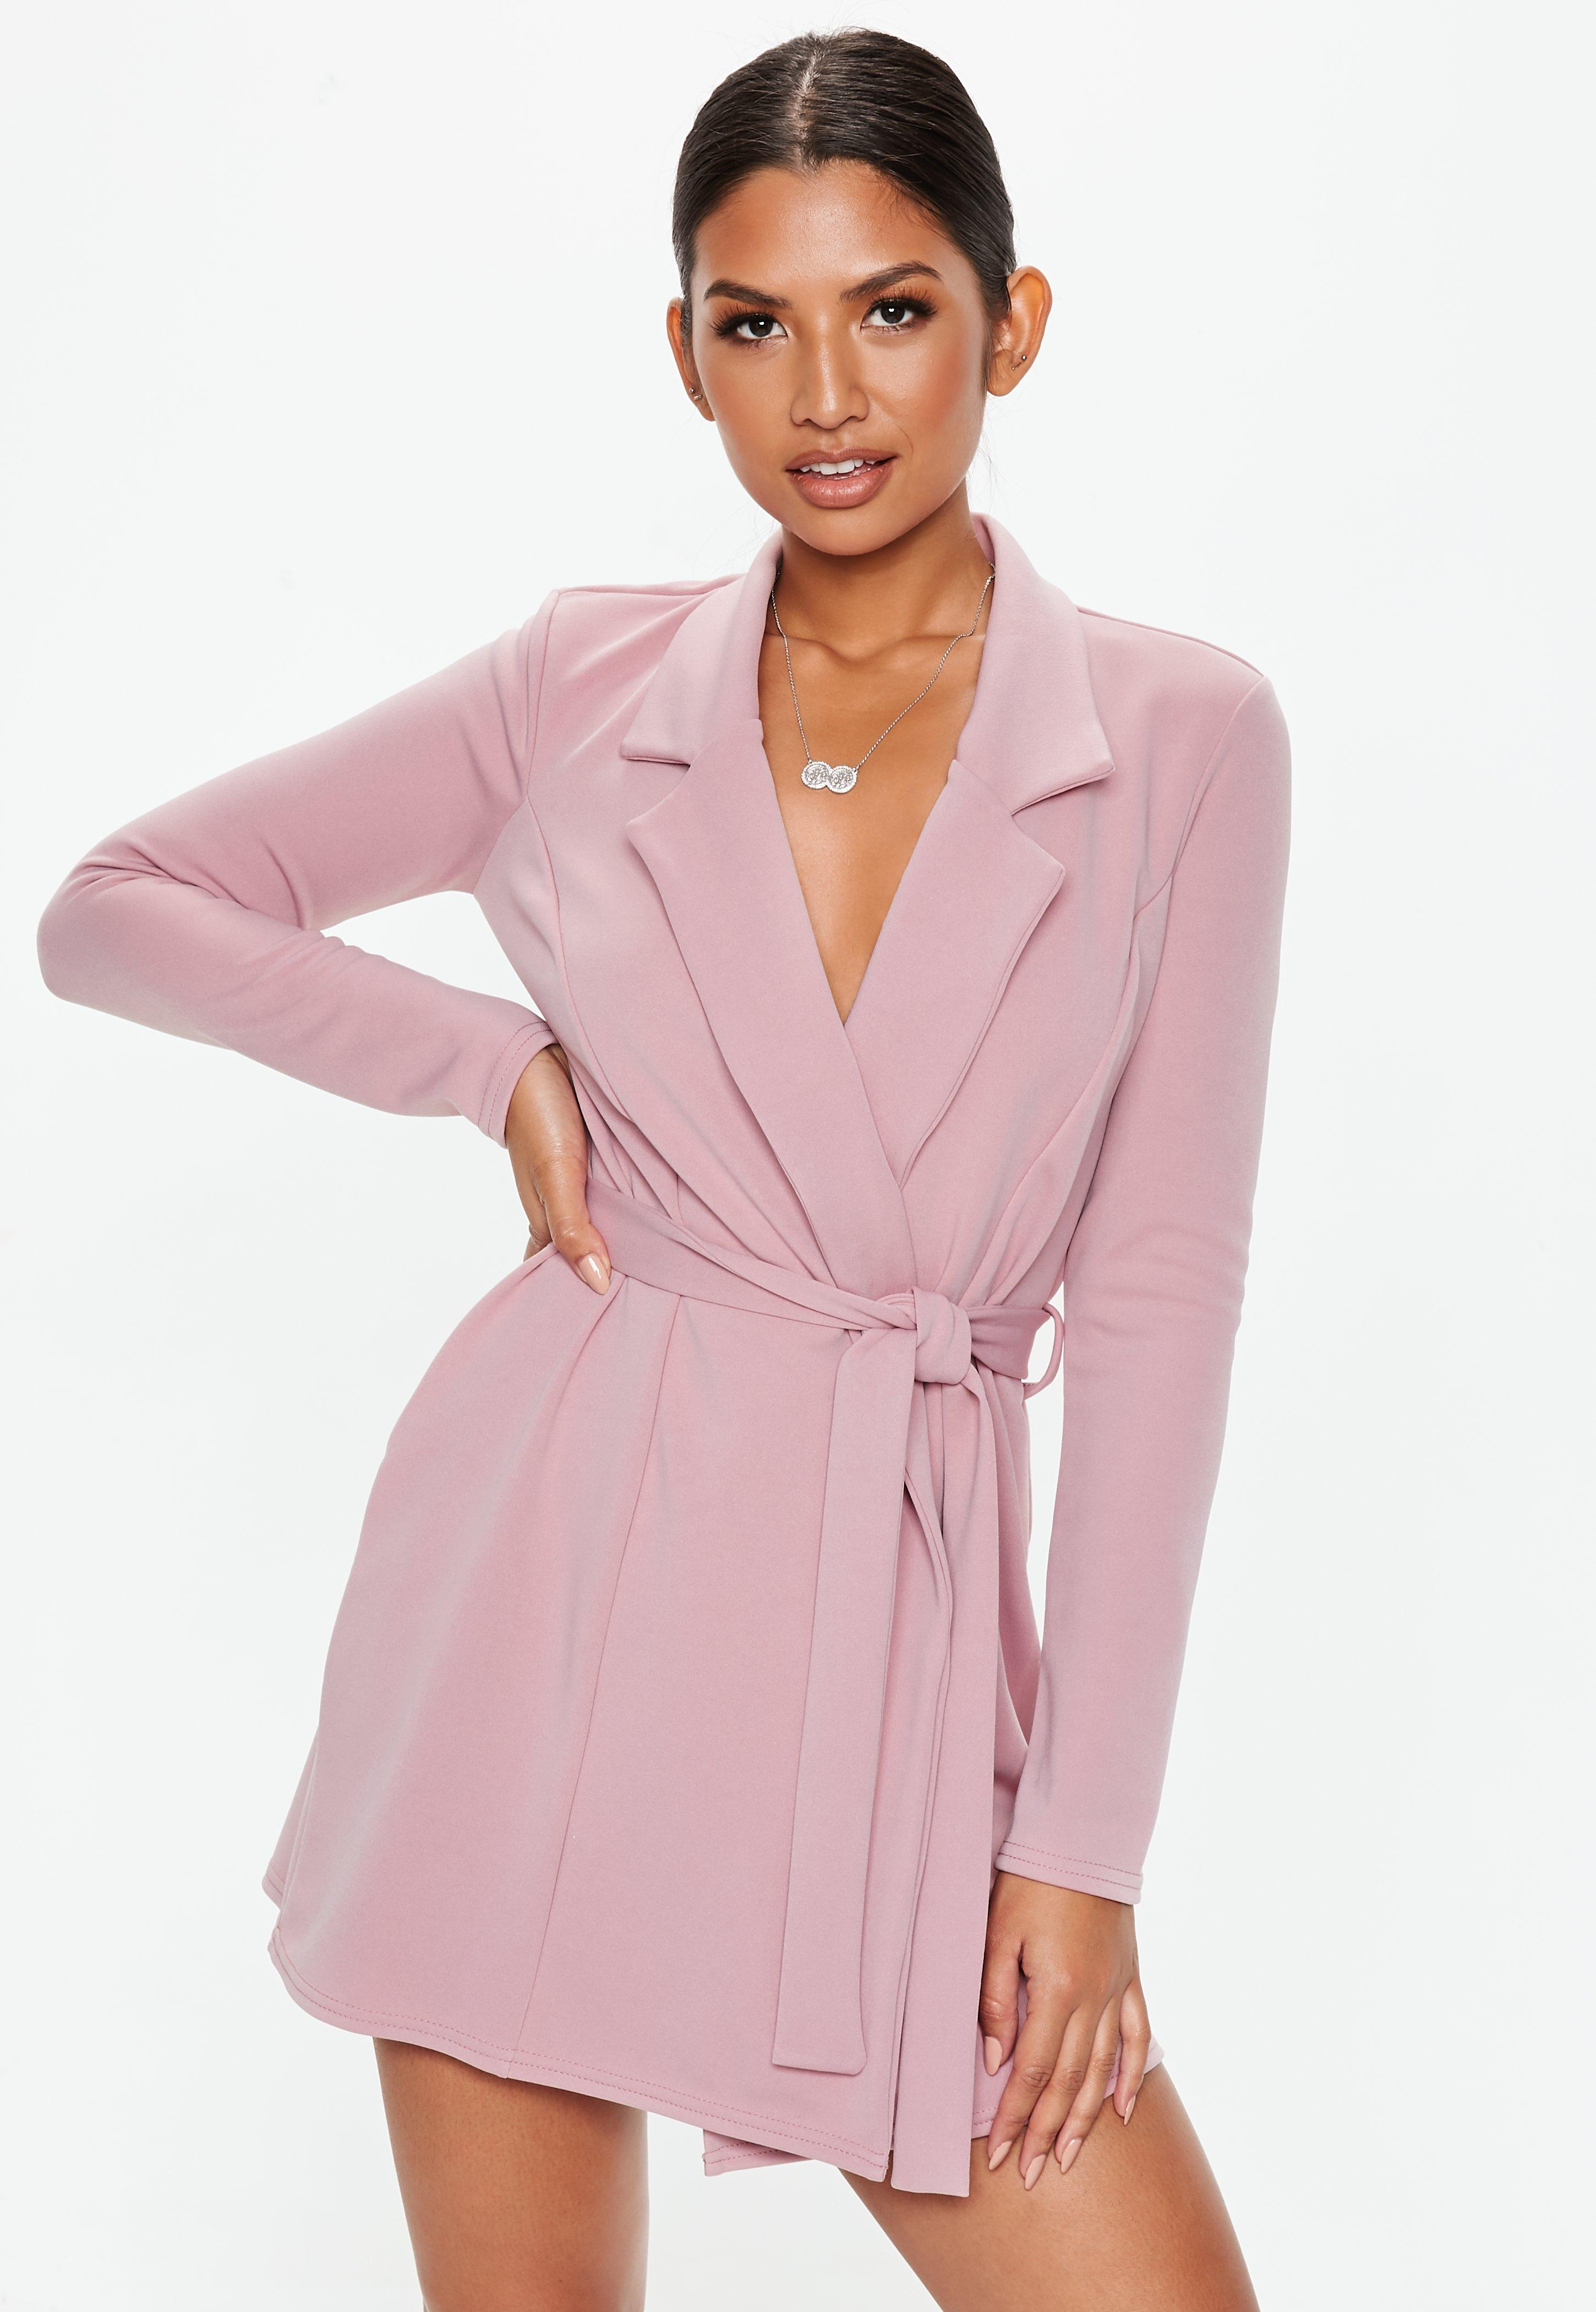 Women S Tailoring Suits For Women Tailored Sets Missguided